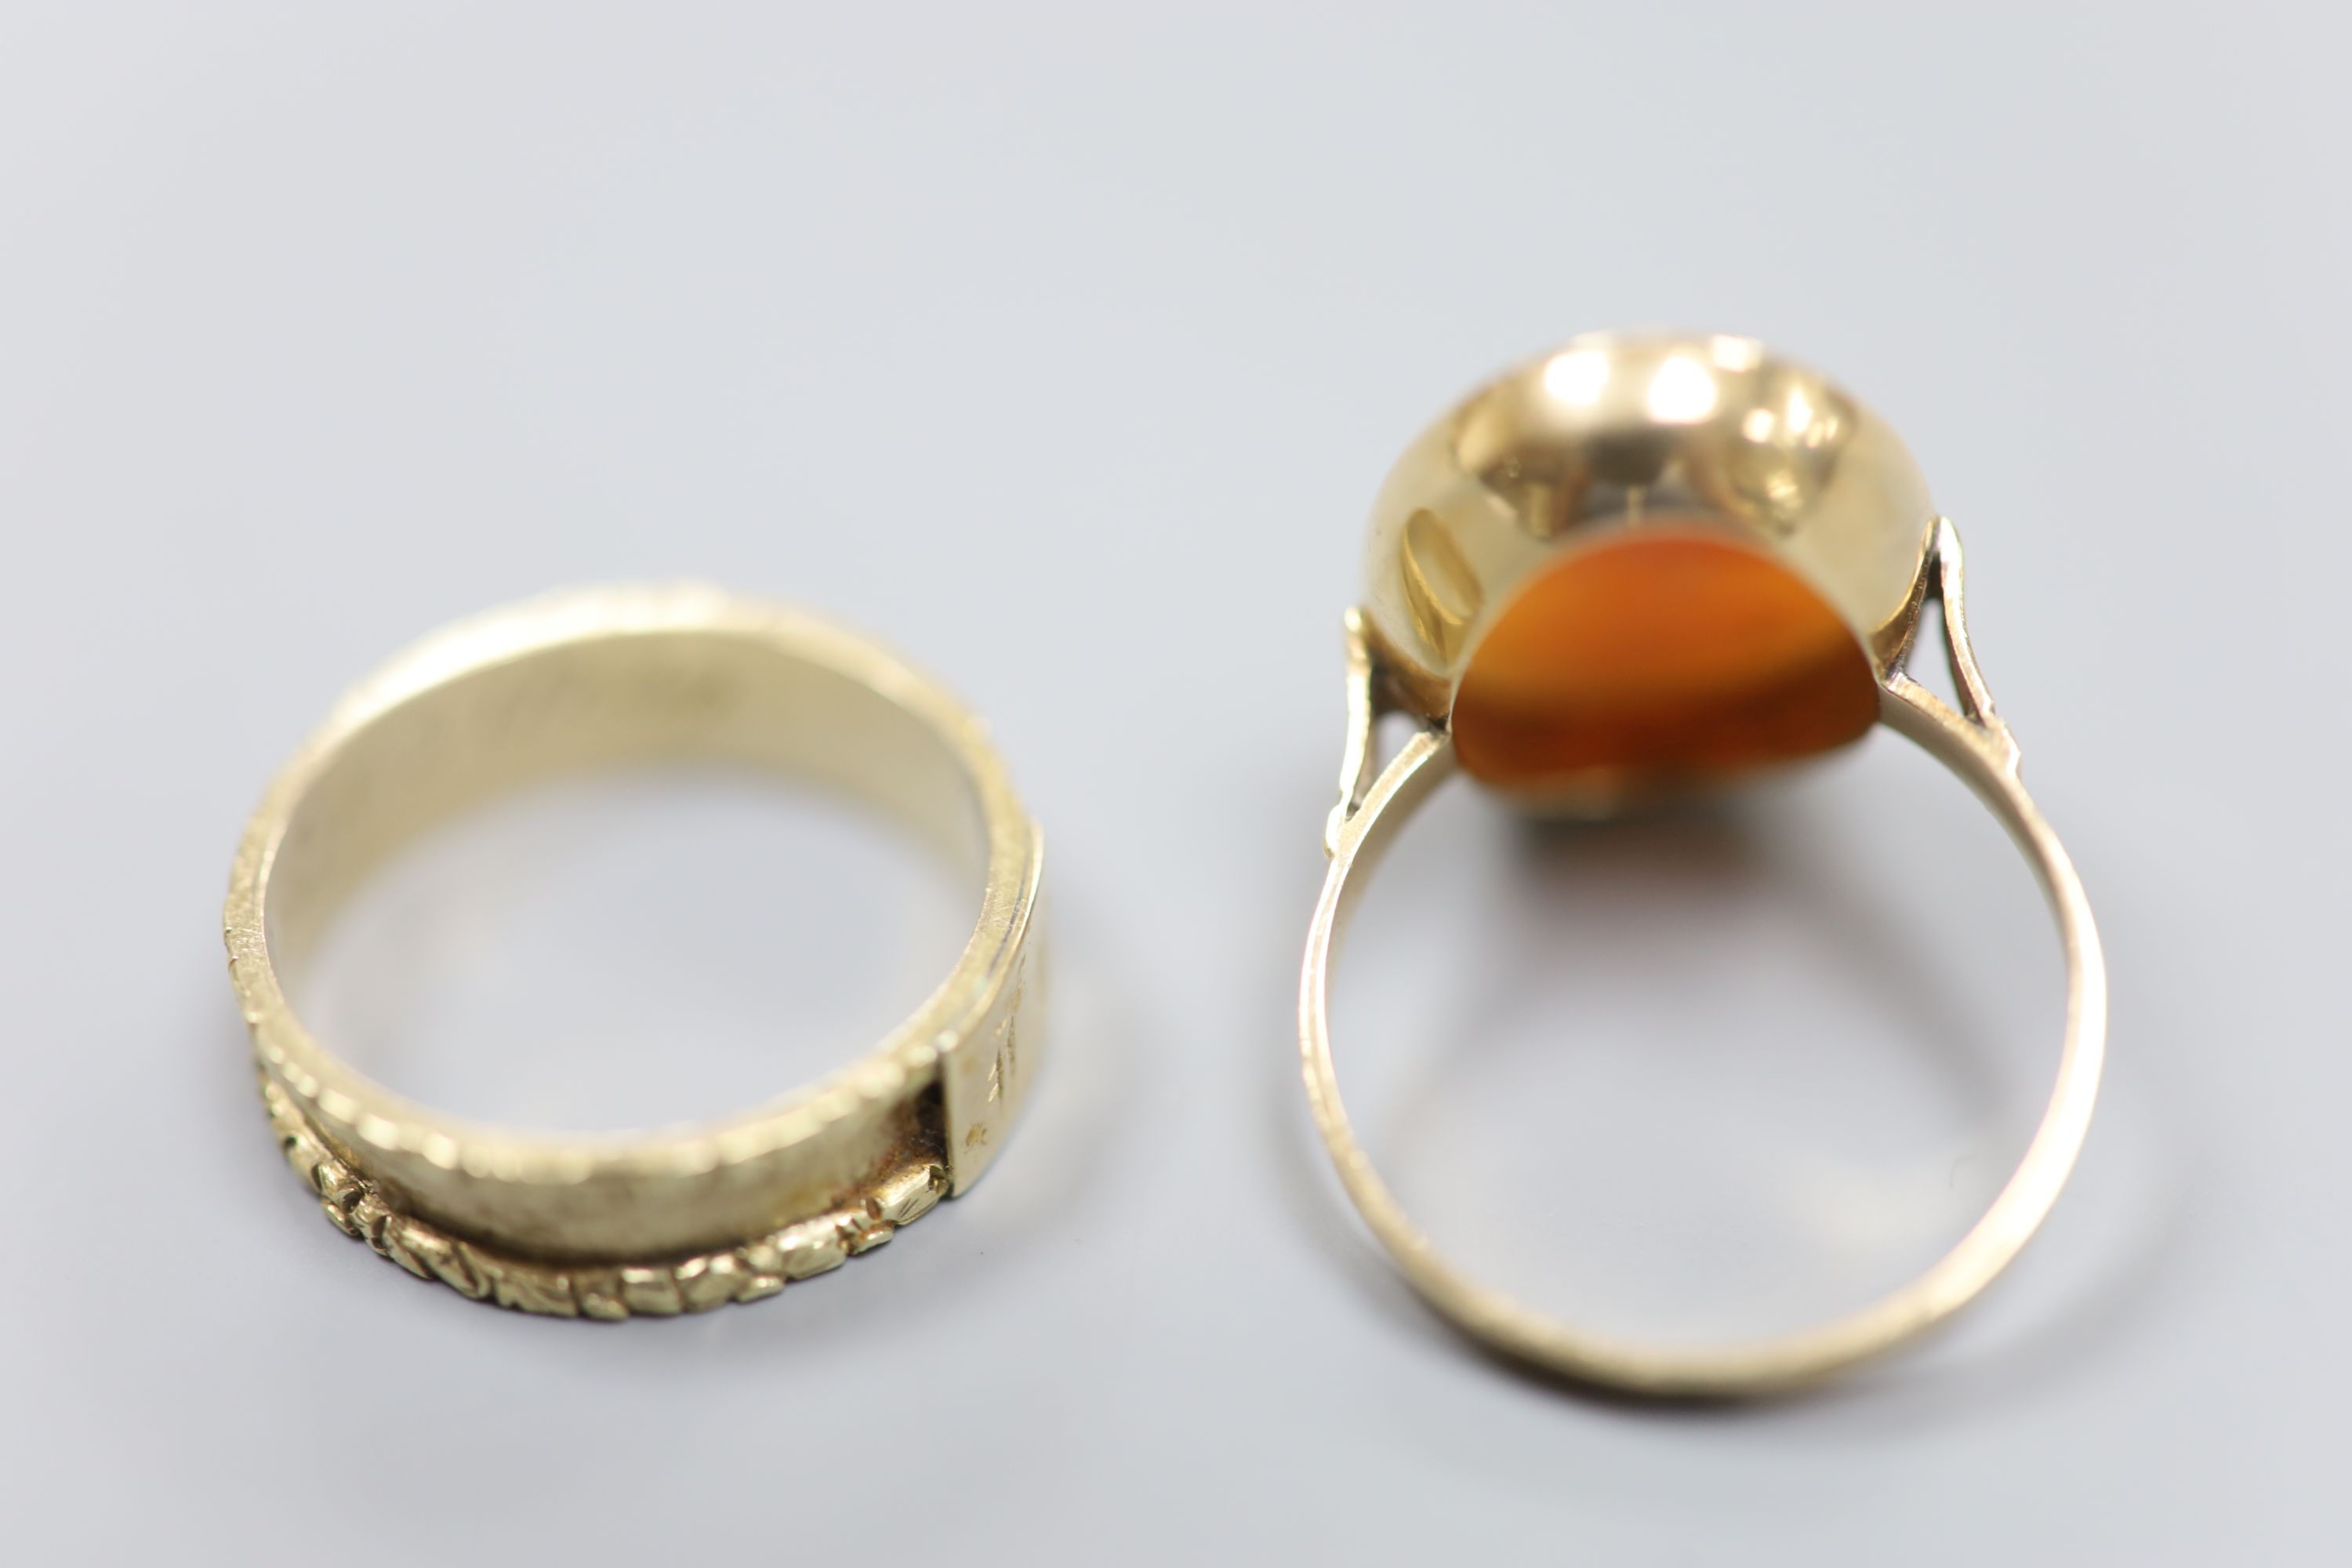 A William IV yellow metal mourning ring (lacking black enamel), with engraved initial and - Image 3 of 3